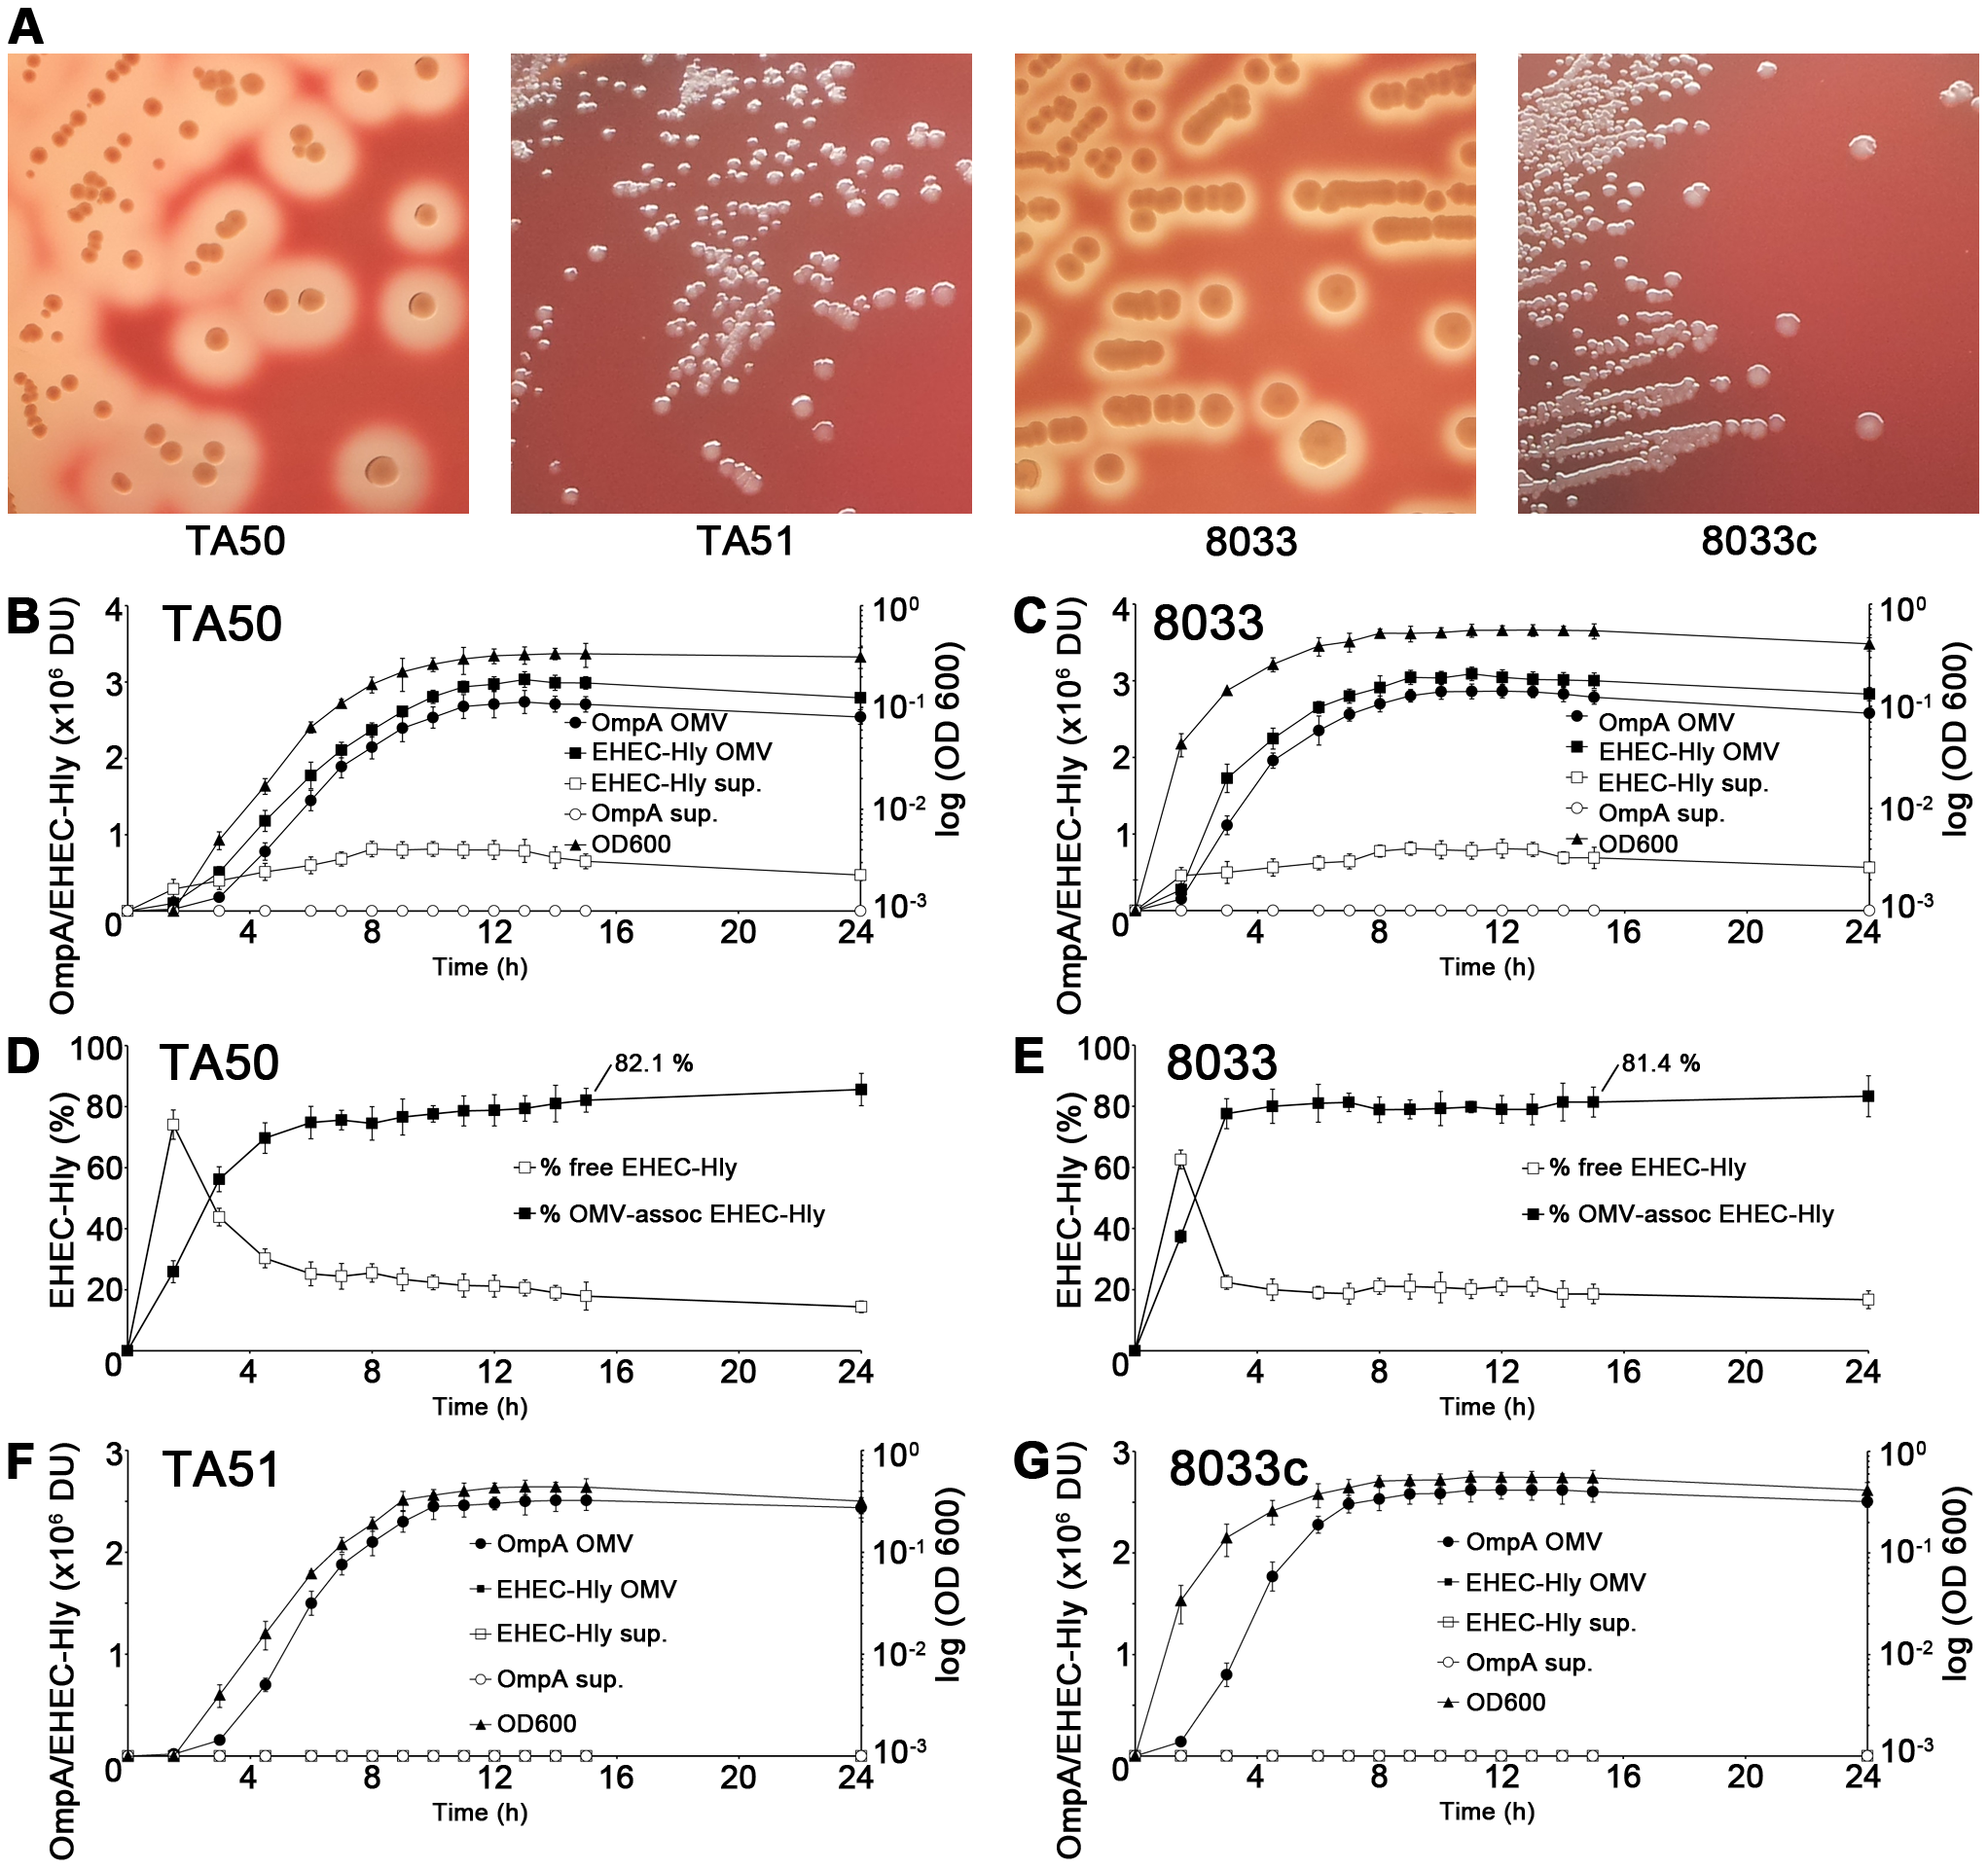 Hemolytic phenotypes and kinetics of EHEC-Hly secretion, OMV production and EHEC-Hly-OMV association in strains used in this study.